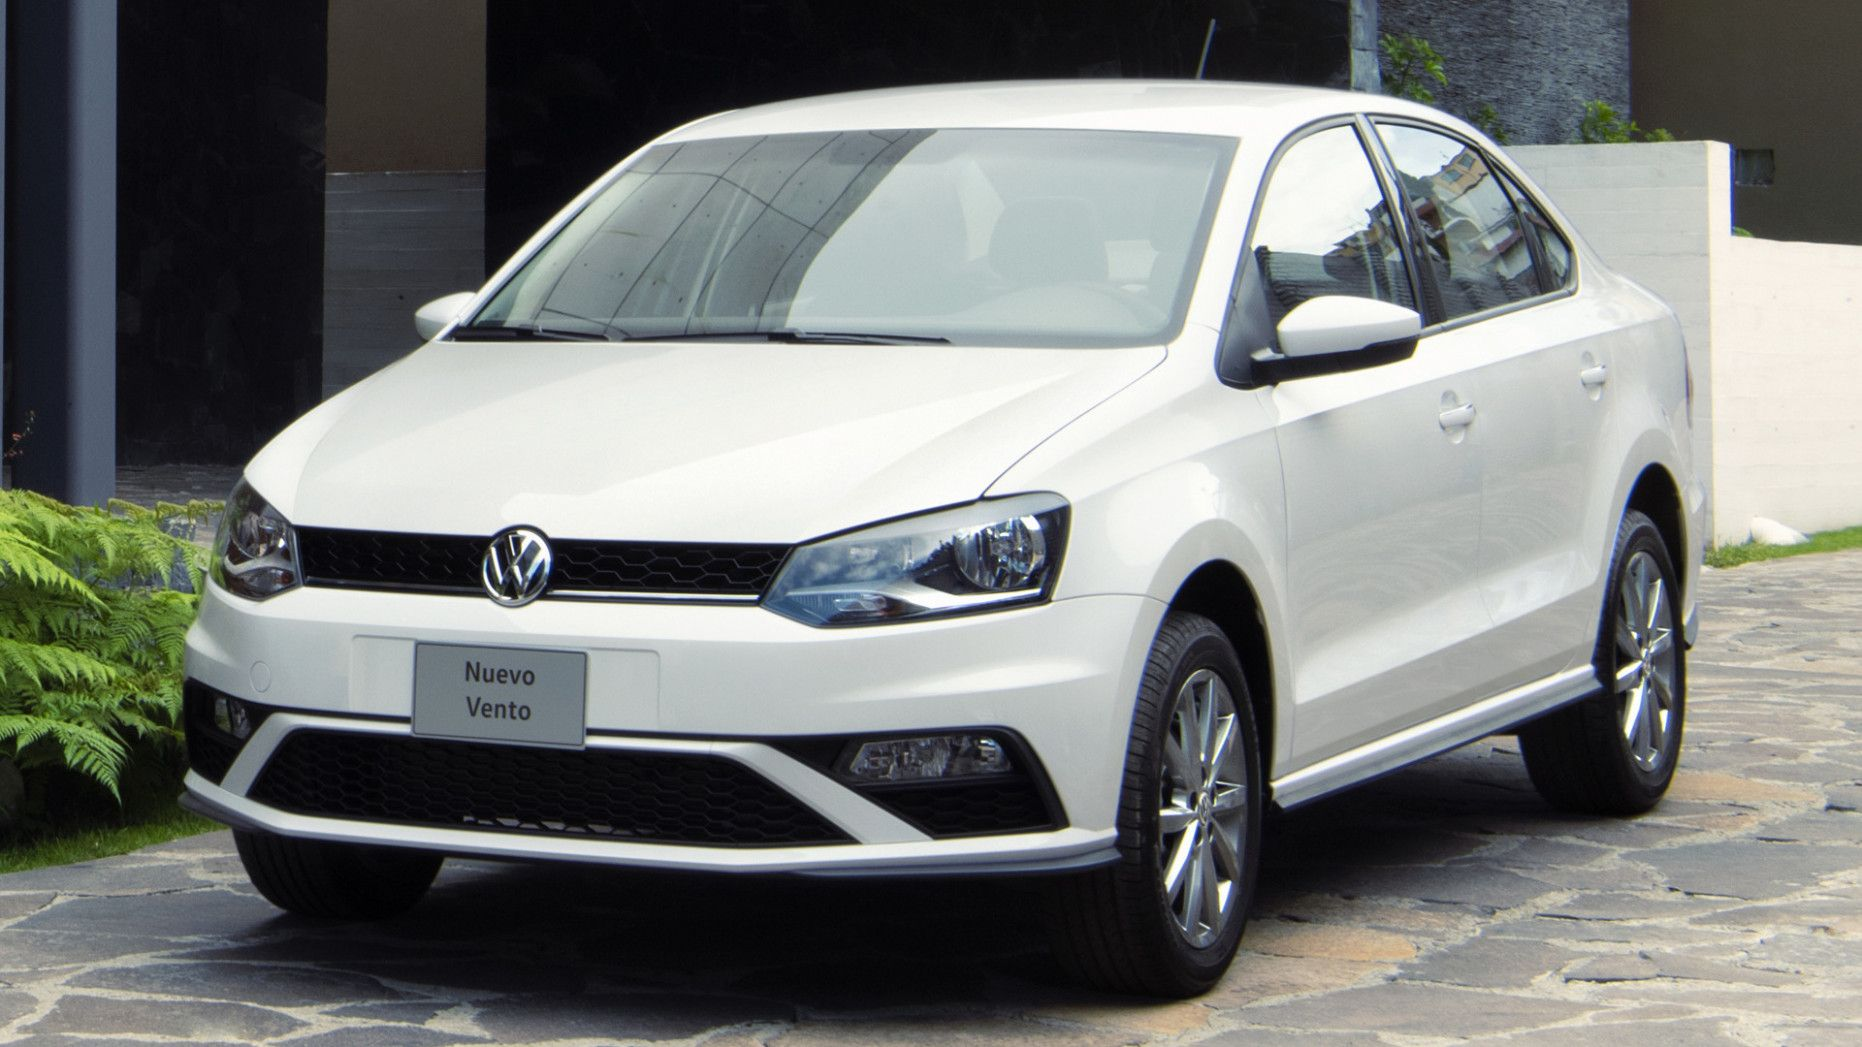 10 Picture 2020 Volkswagen Vento Volkswagen has appear new